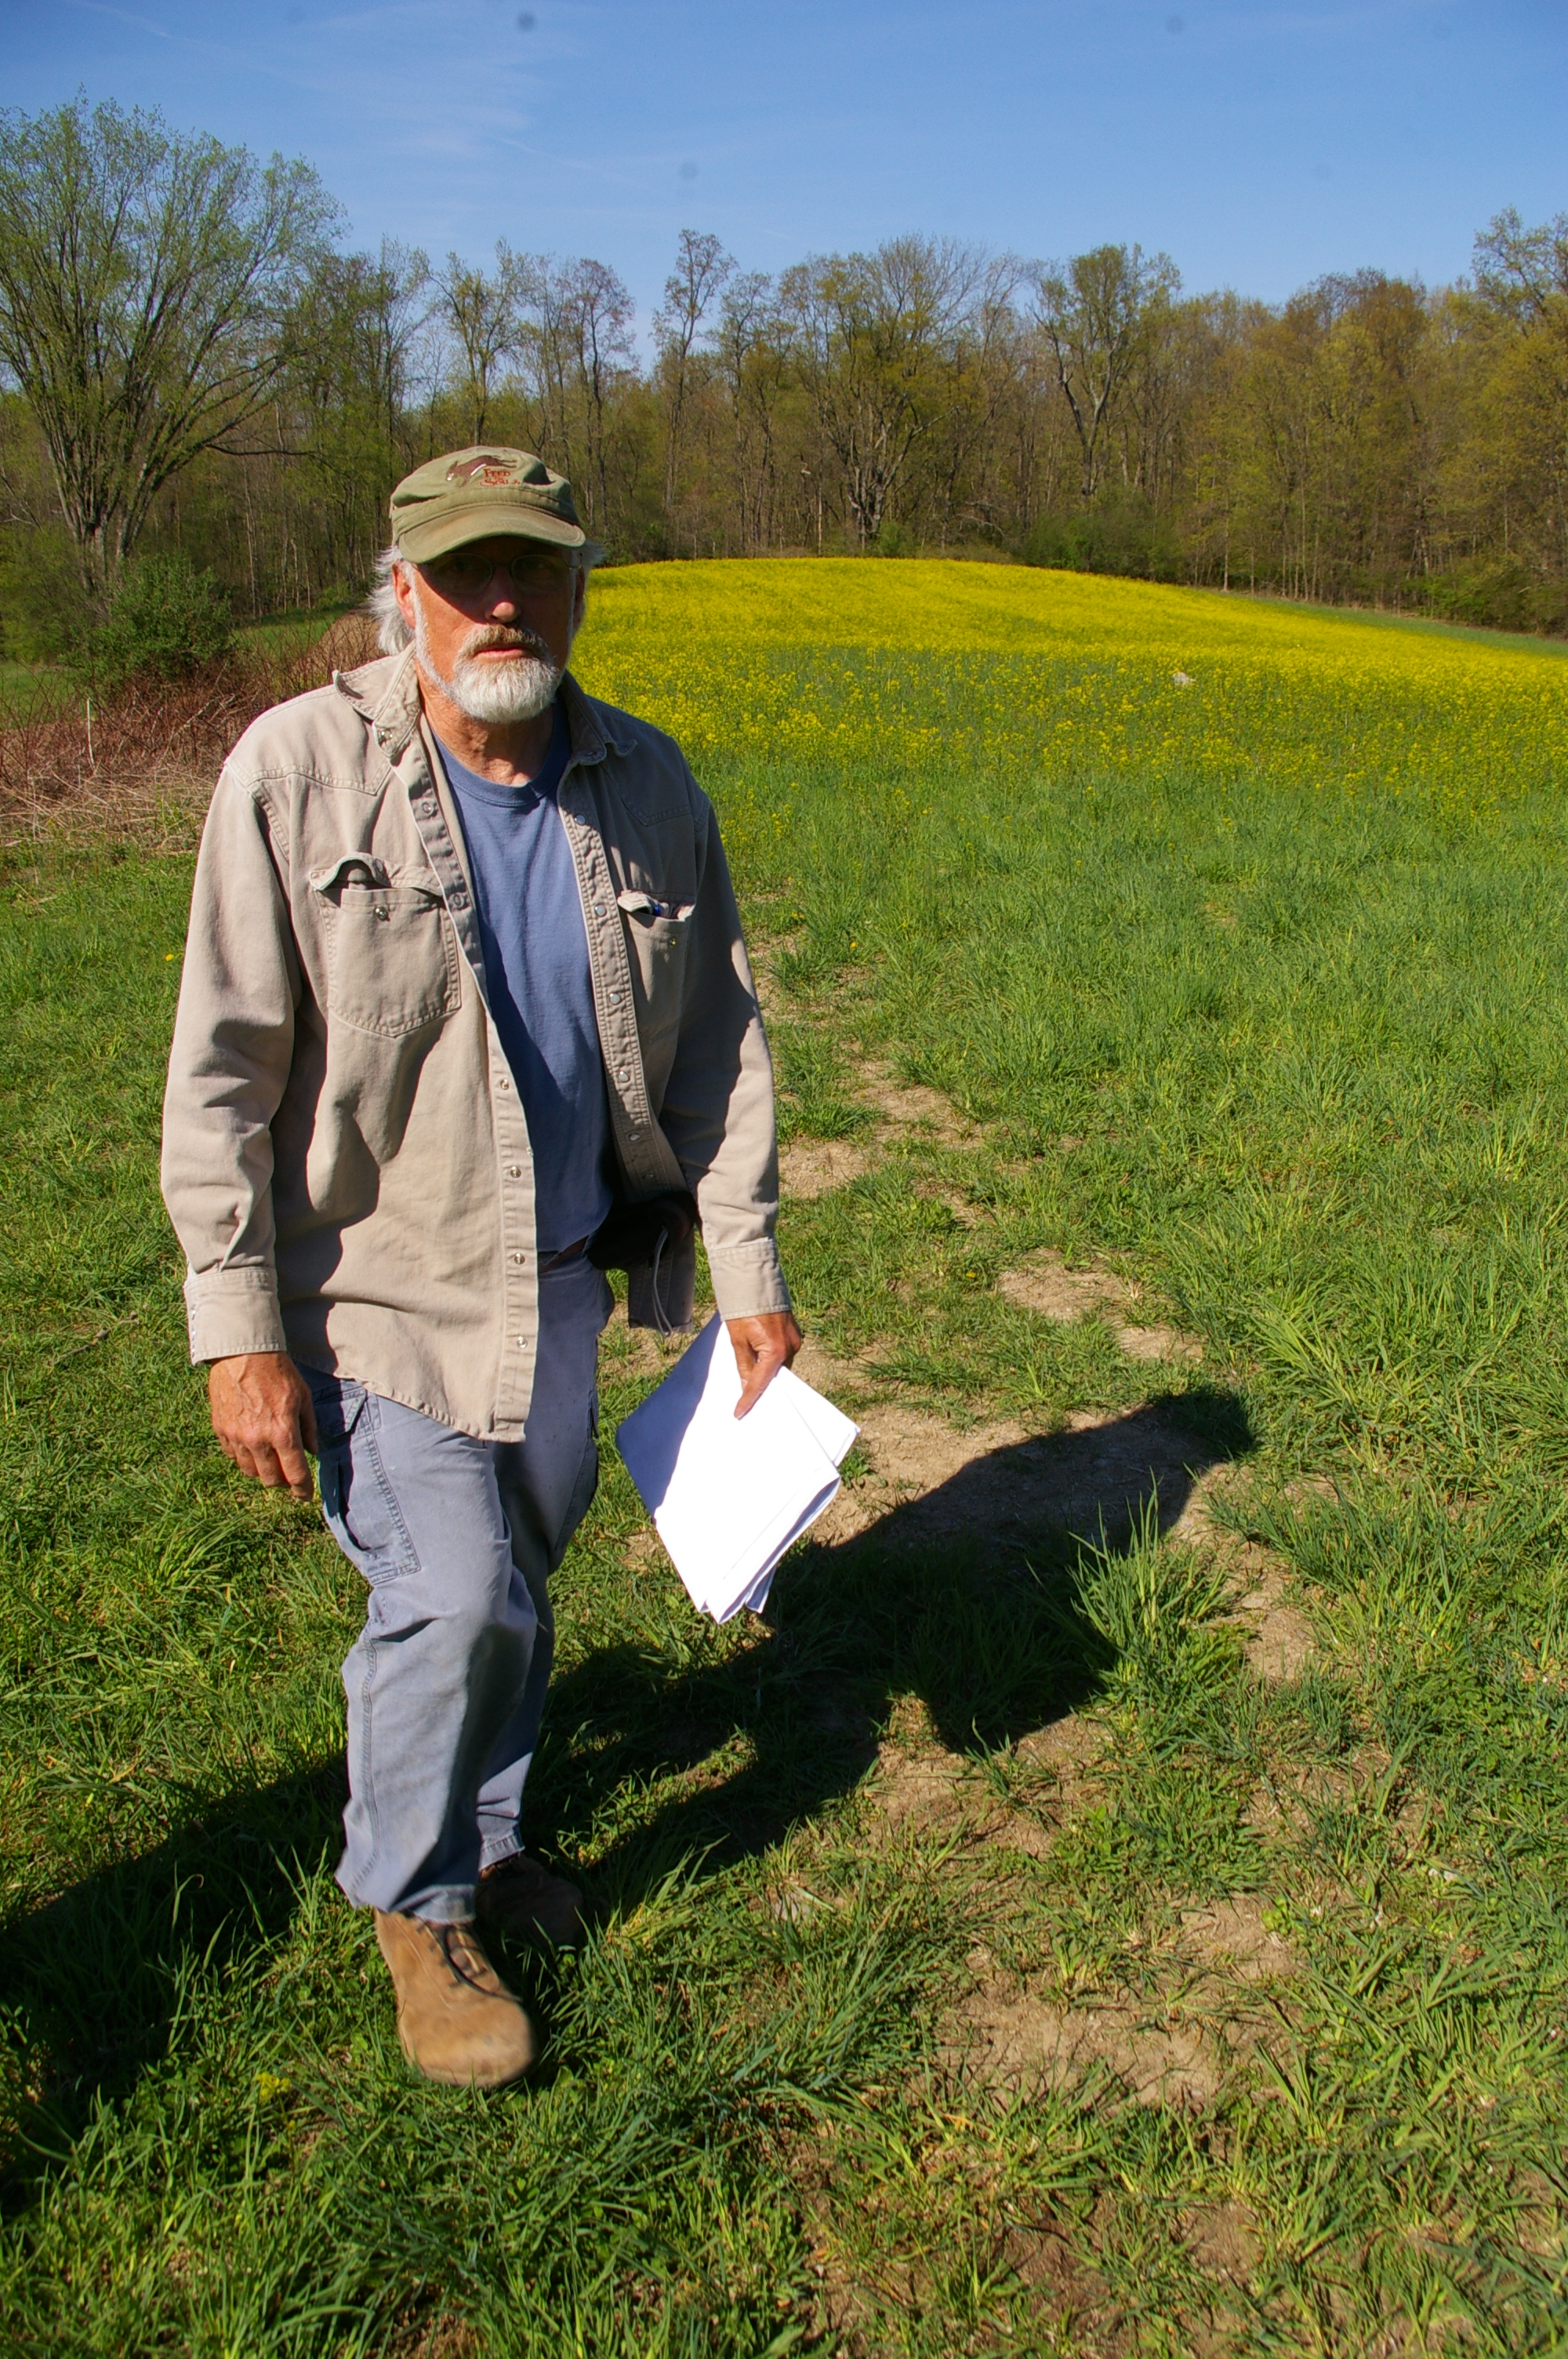 cover crops grownyc